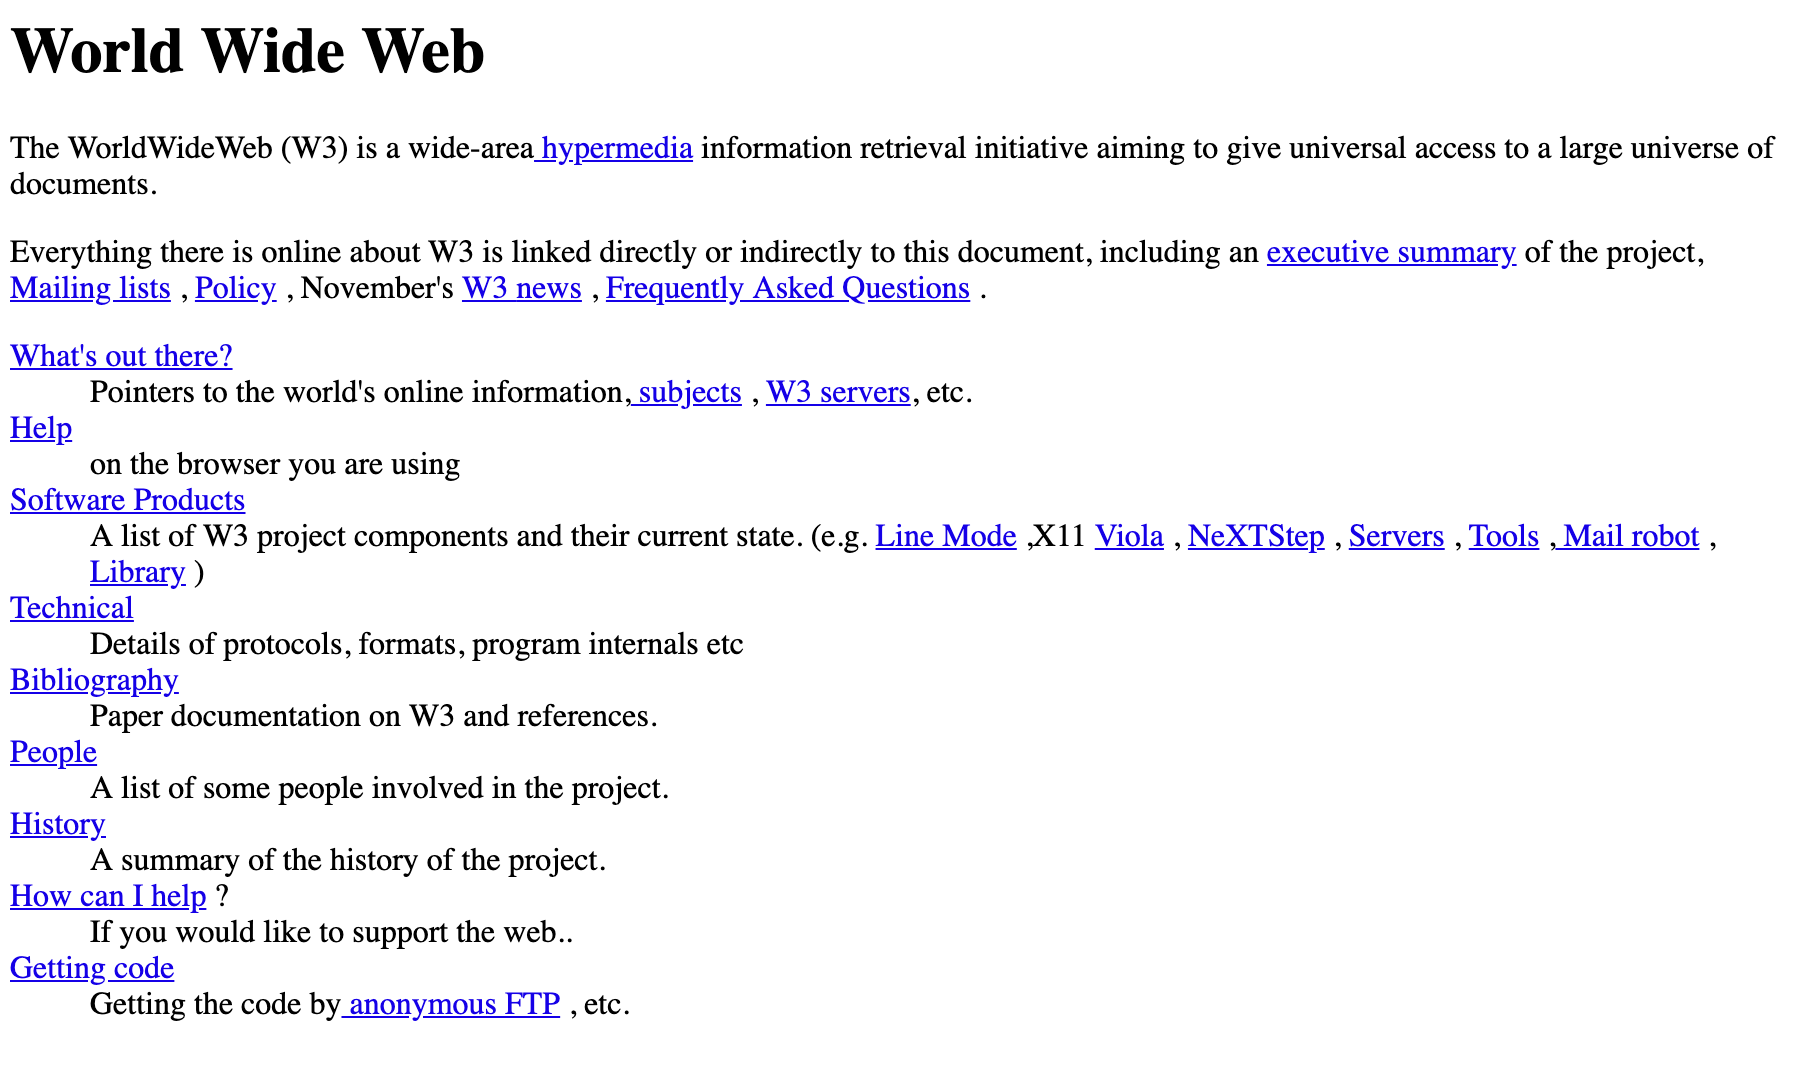 Image of the first internet website created in 1991